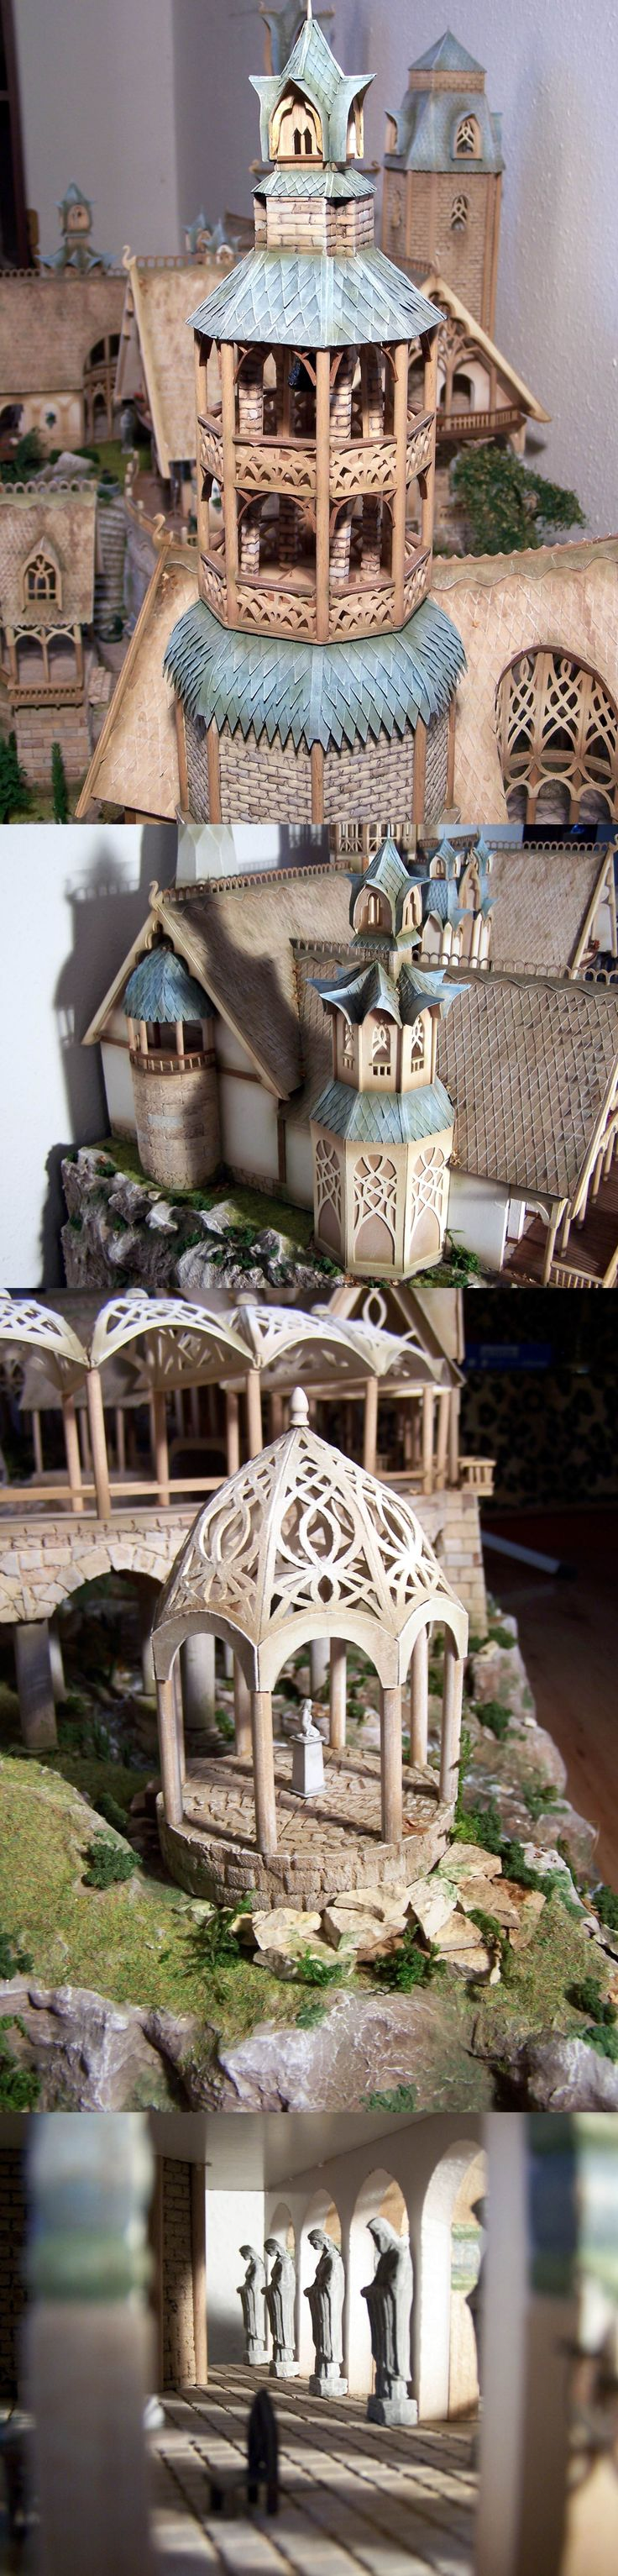 Rivendell, House of Elrond miniature, built from scratch with 1000 working hours. (ARTISTIC NERD WIN)